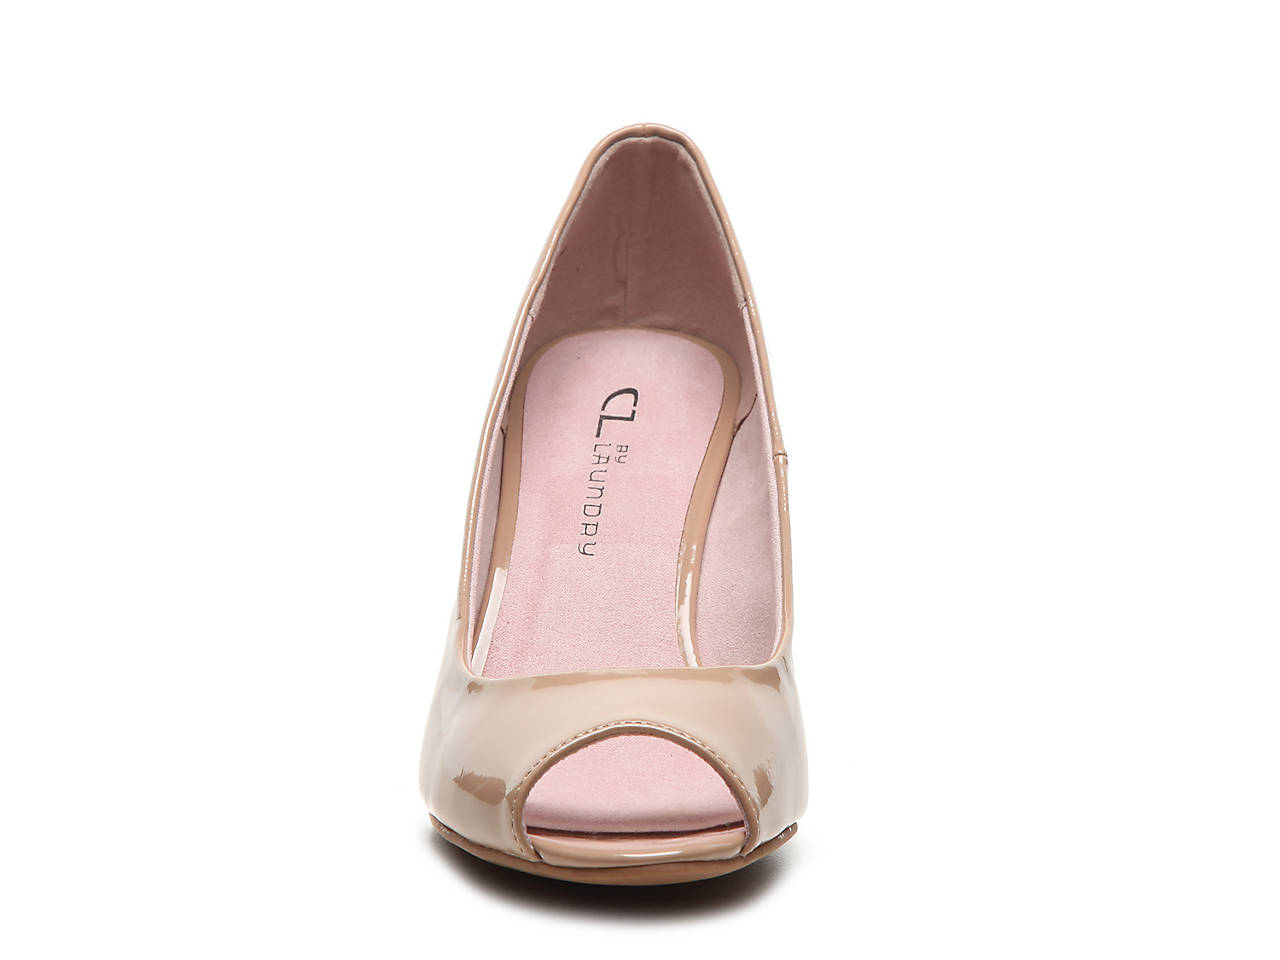 b5c3f1720198 CL by Laundry Noreen Wedge Pump Women s Shoes